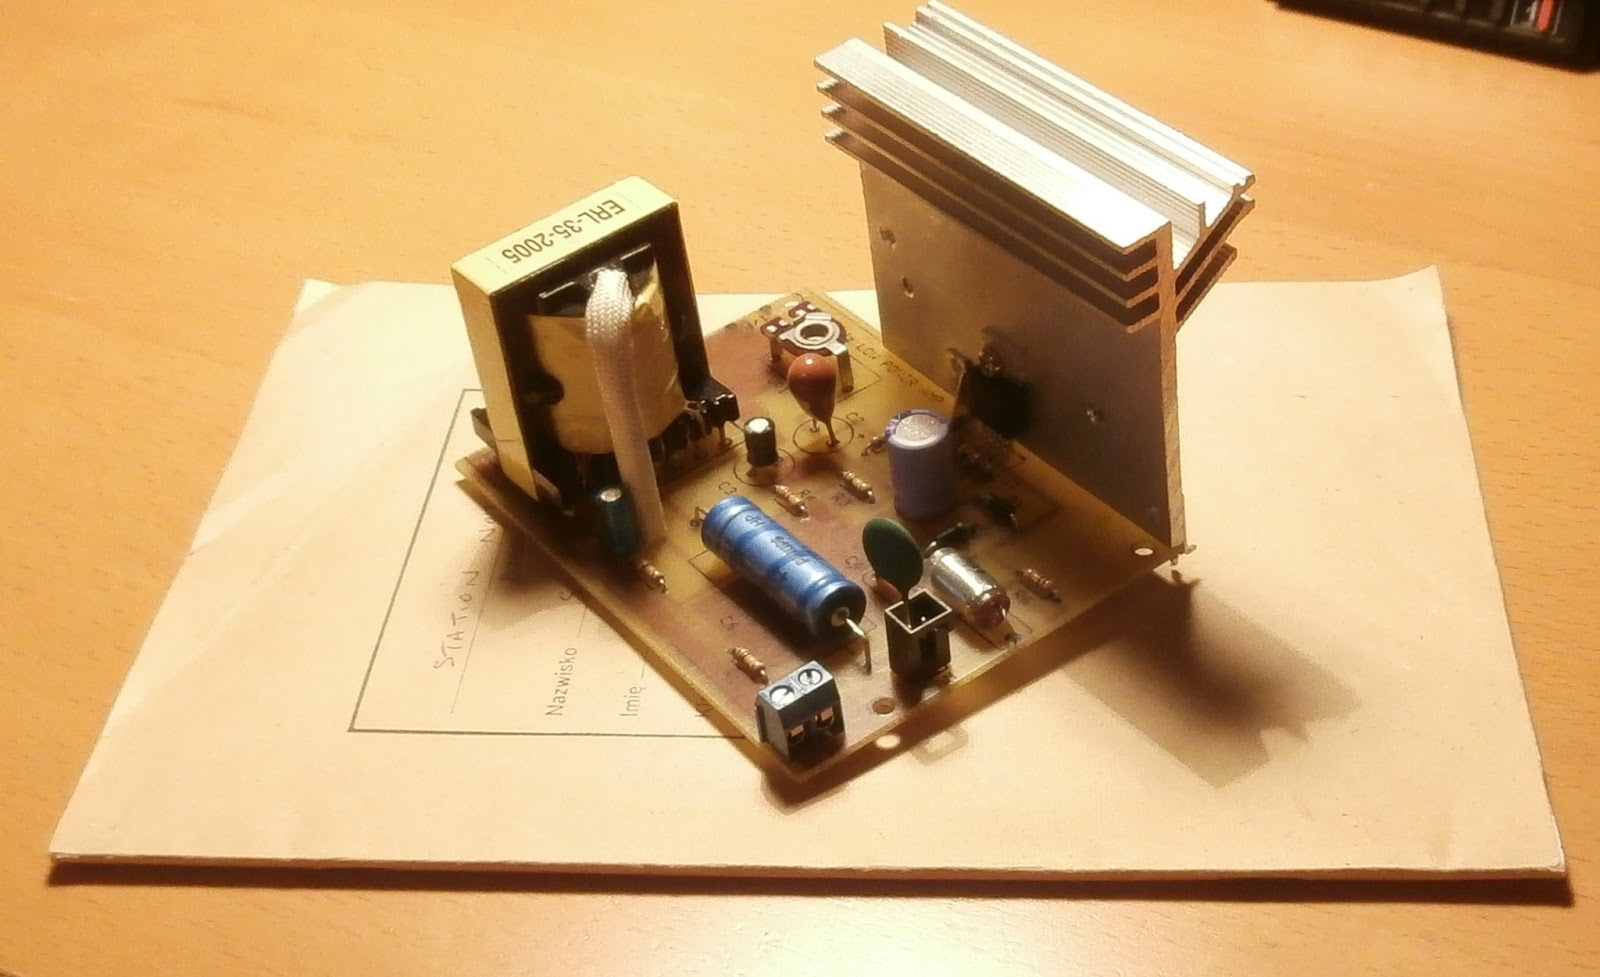 Radioworm: Experimental Low Power Amplifier For 2190m Longwave